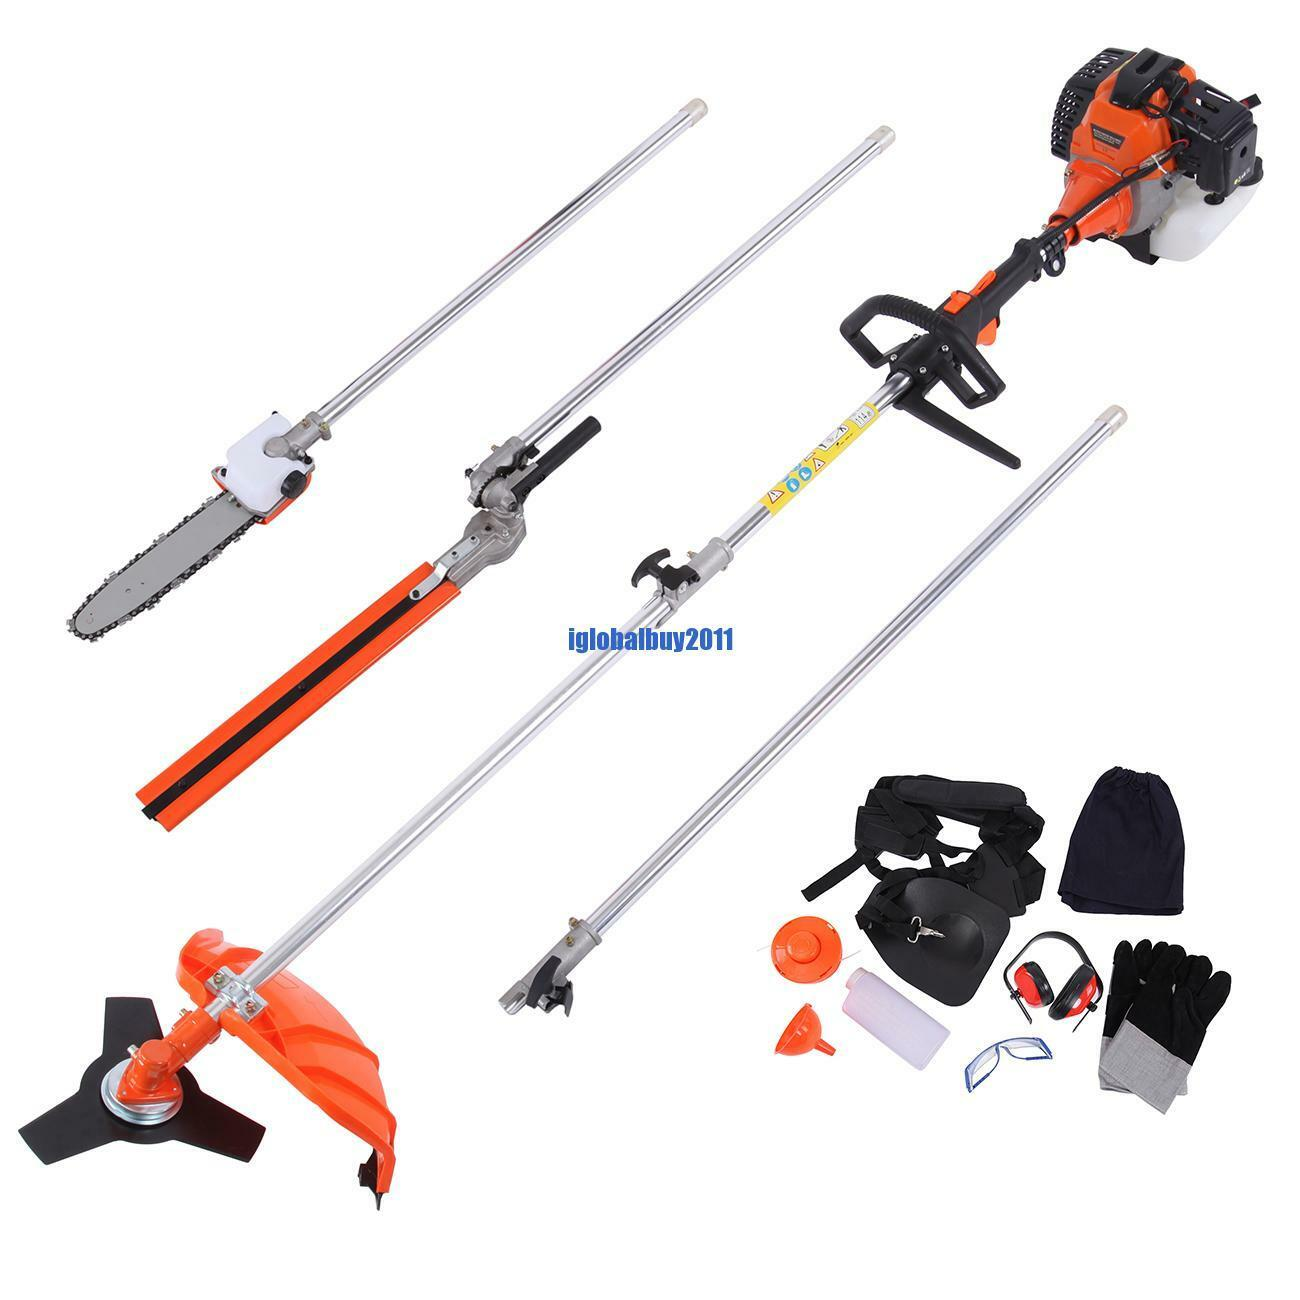 Multifunctional 5 in 1 52cc Petrol Hedge Trimmer Chainsaw Brush Cutter Pole  Saw2